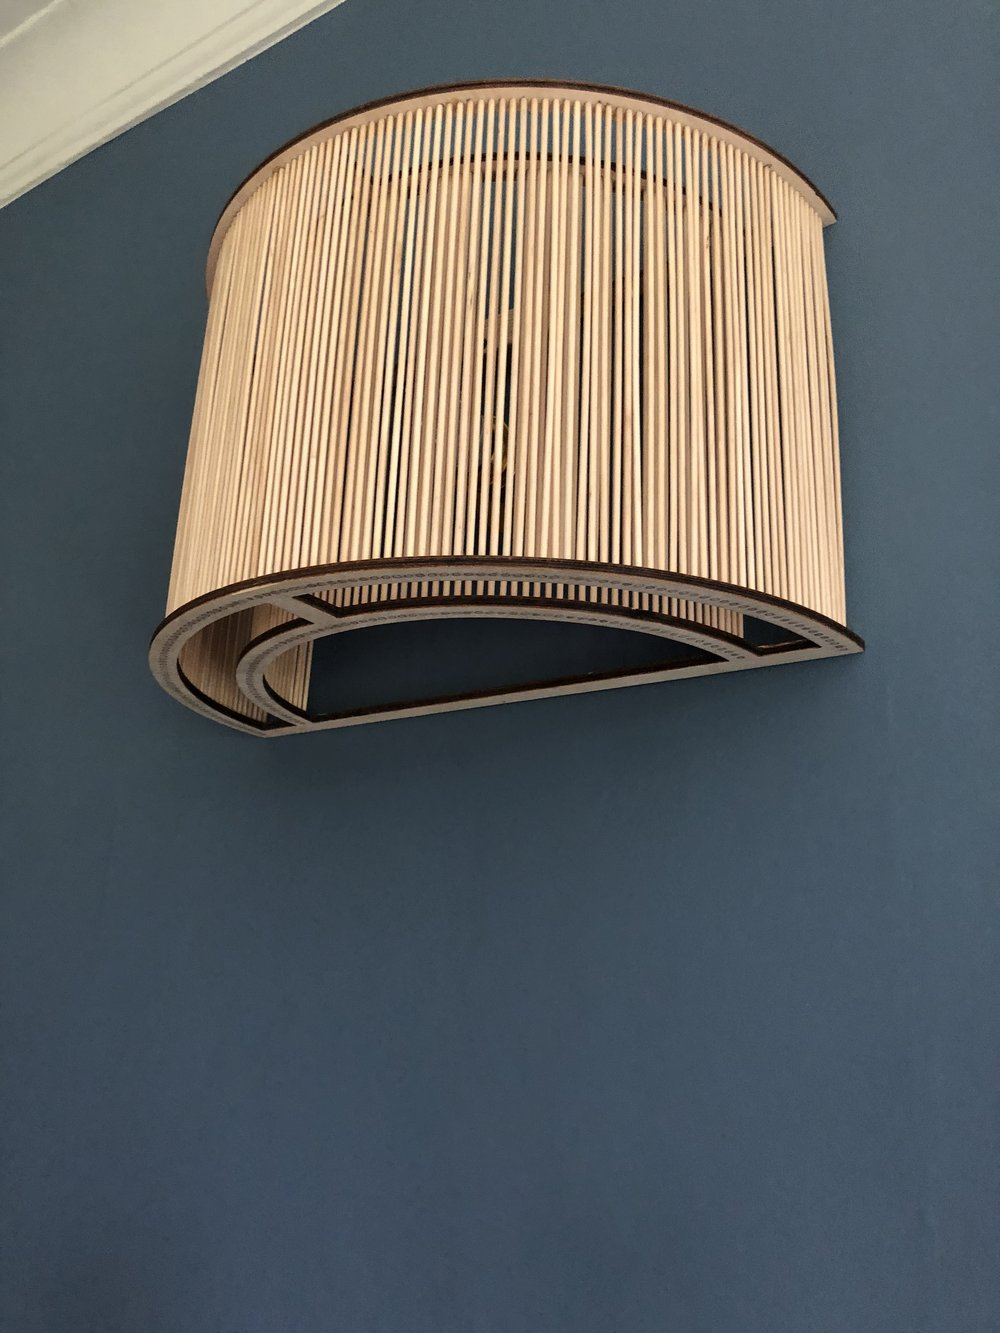 Wooden wall lights, please enquire within.